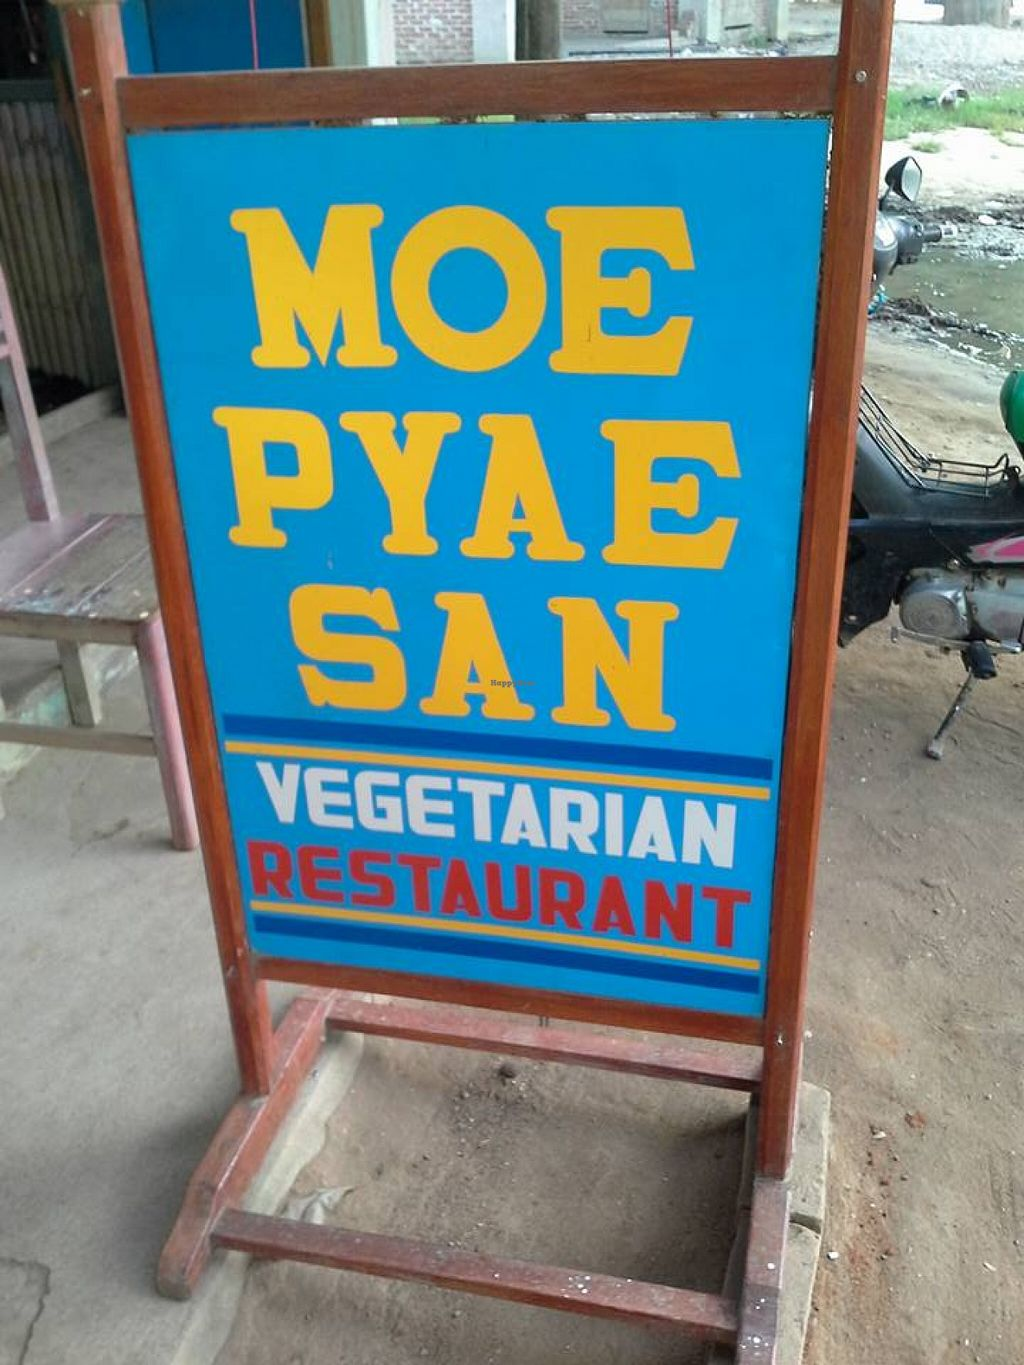 """Photo of Moe Pyae San Vegetarian Restaurant  by <a href=""""/members/profile/JimmySeah"""">JimmySeah</a> <br/>restaurant signage <br/> December 31, 2015  - <a href='/contact/abuse/image/67267/130481'>Report</a>"""